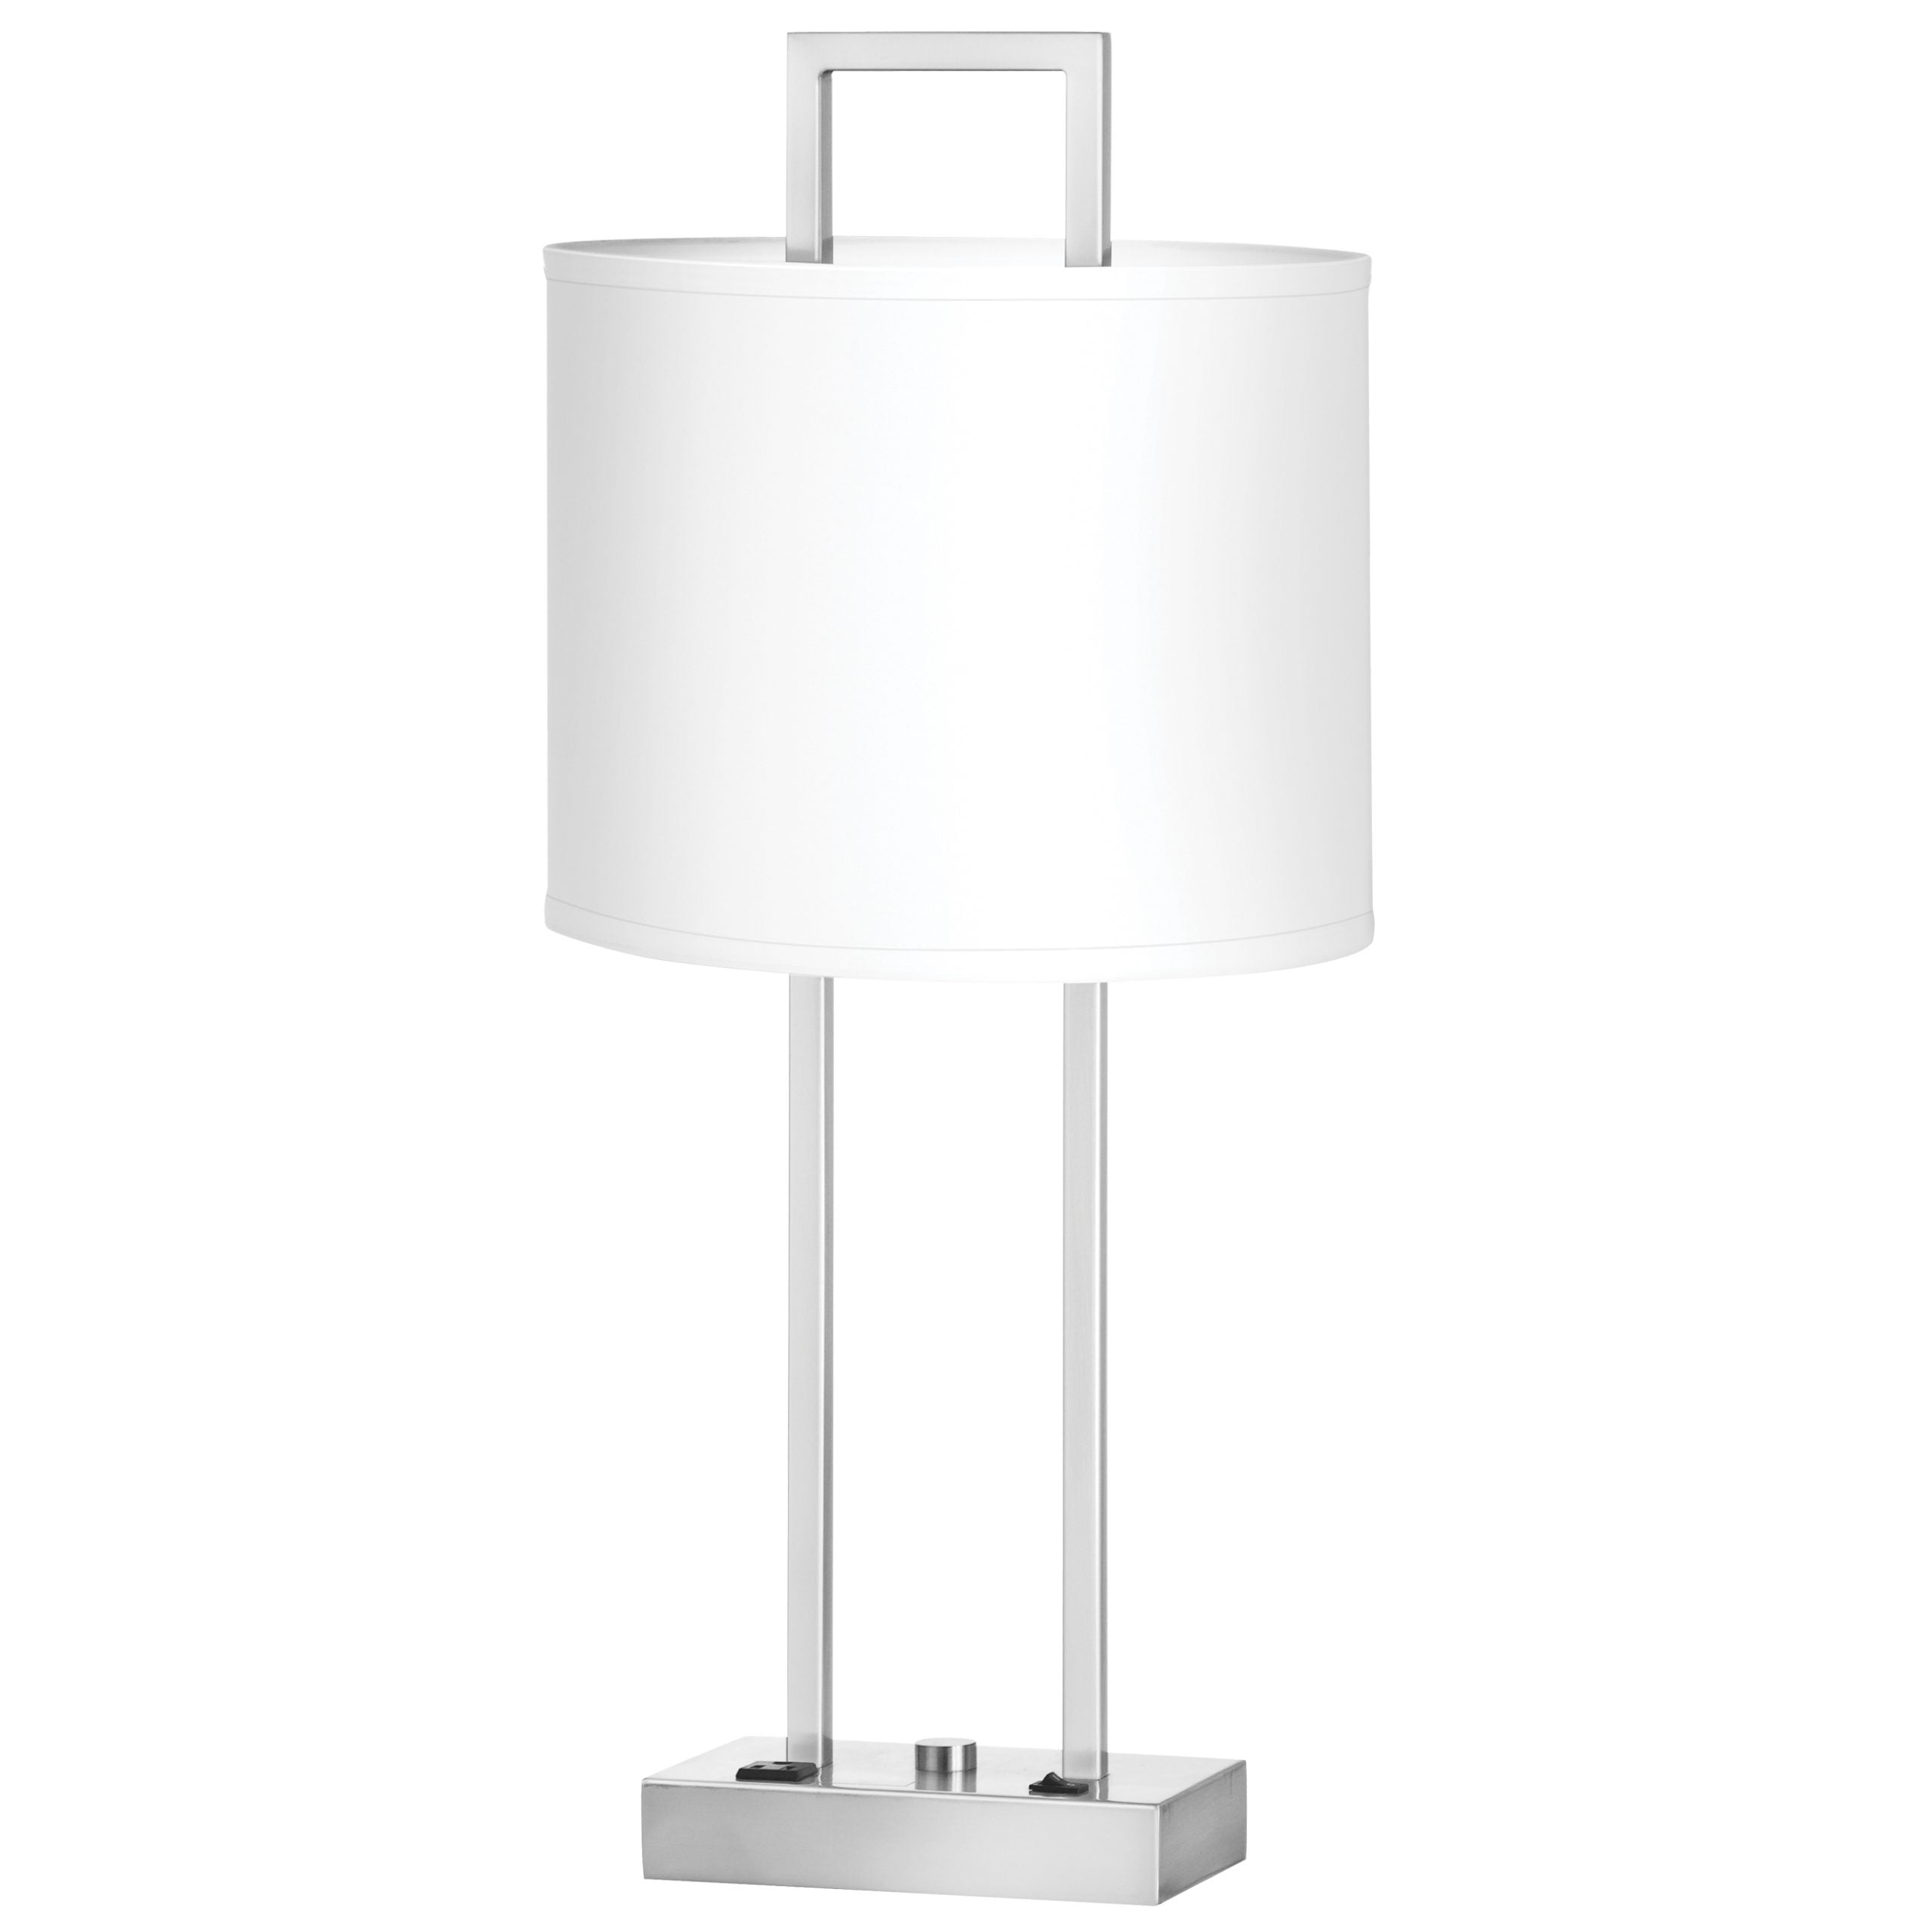 Prestige Single Table Lamp with 1 Outlet